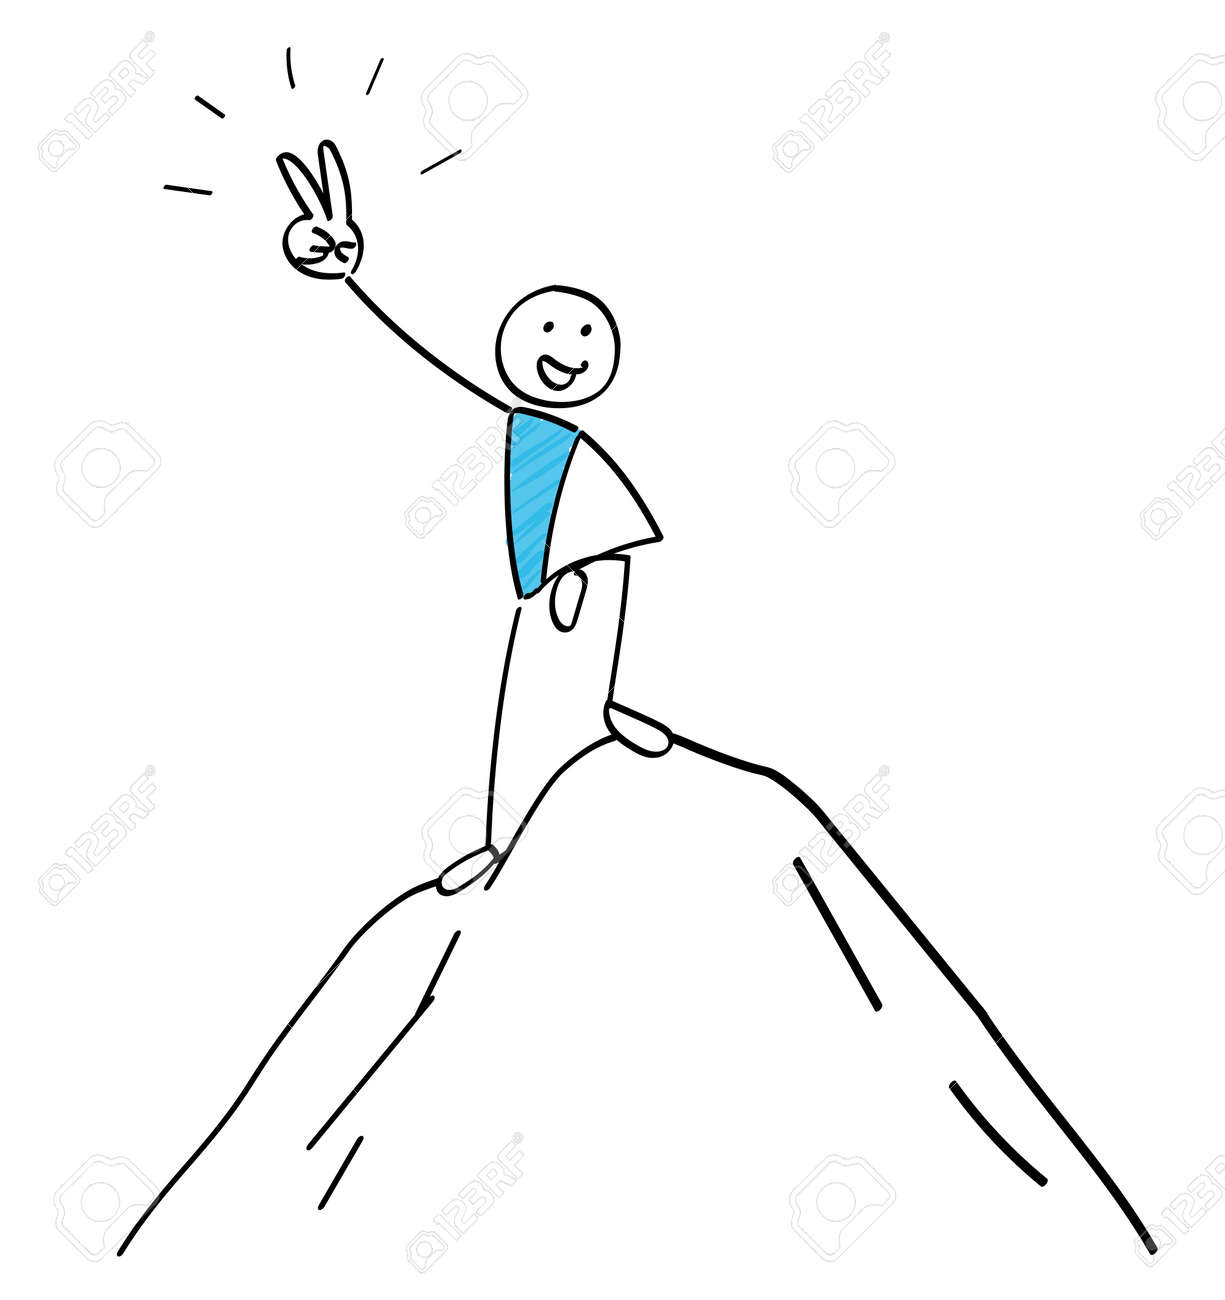 Stickman poses at the summit - 168807249